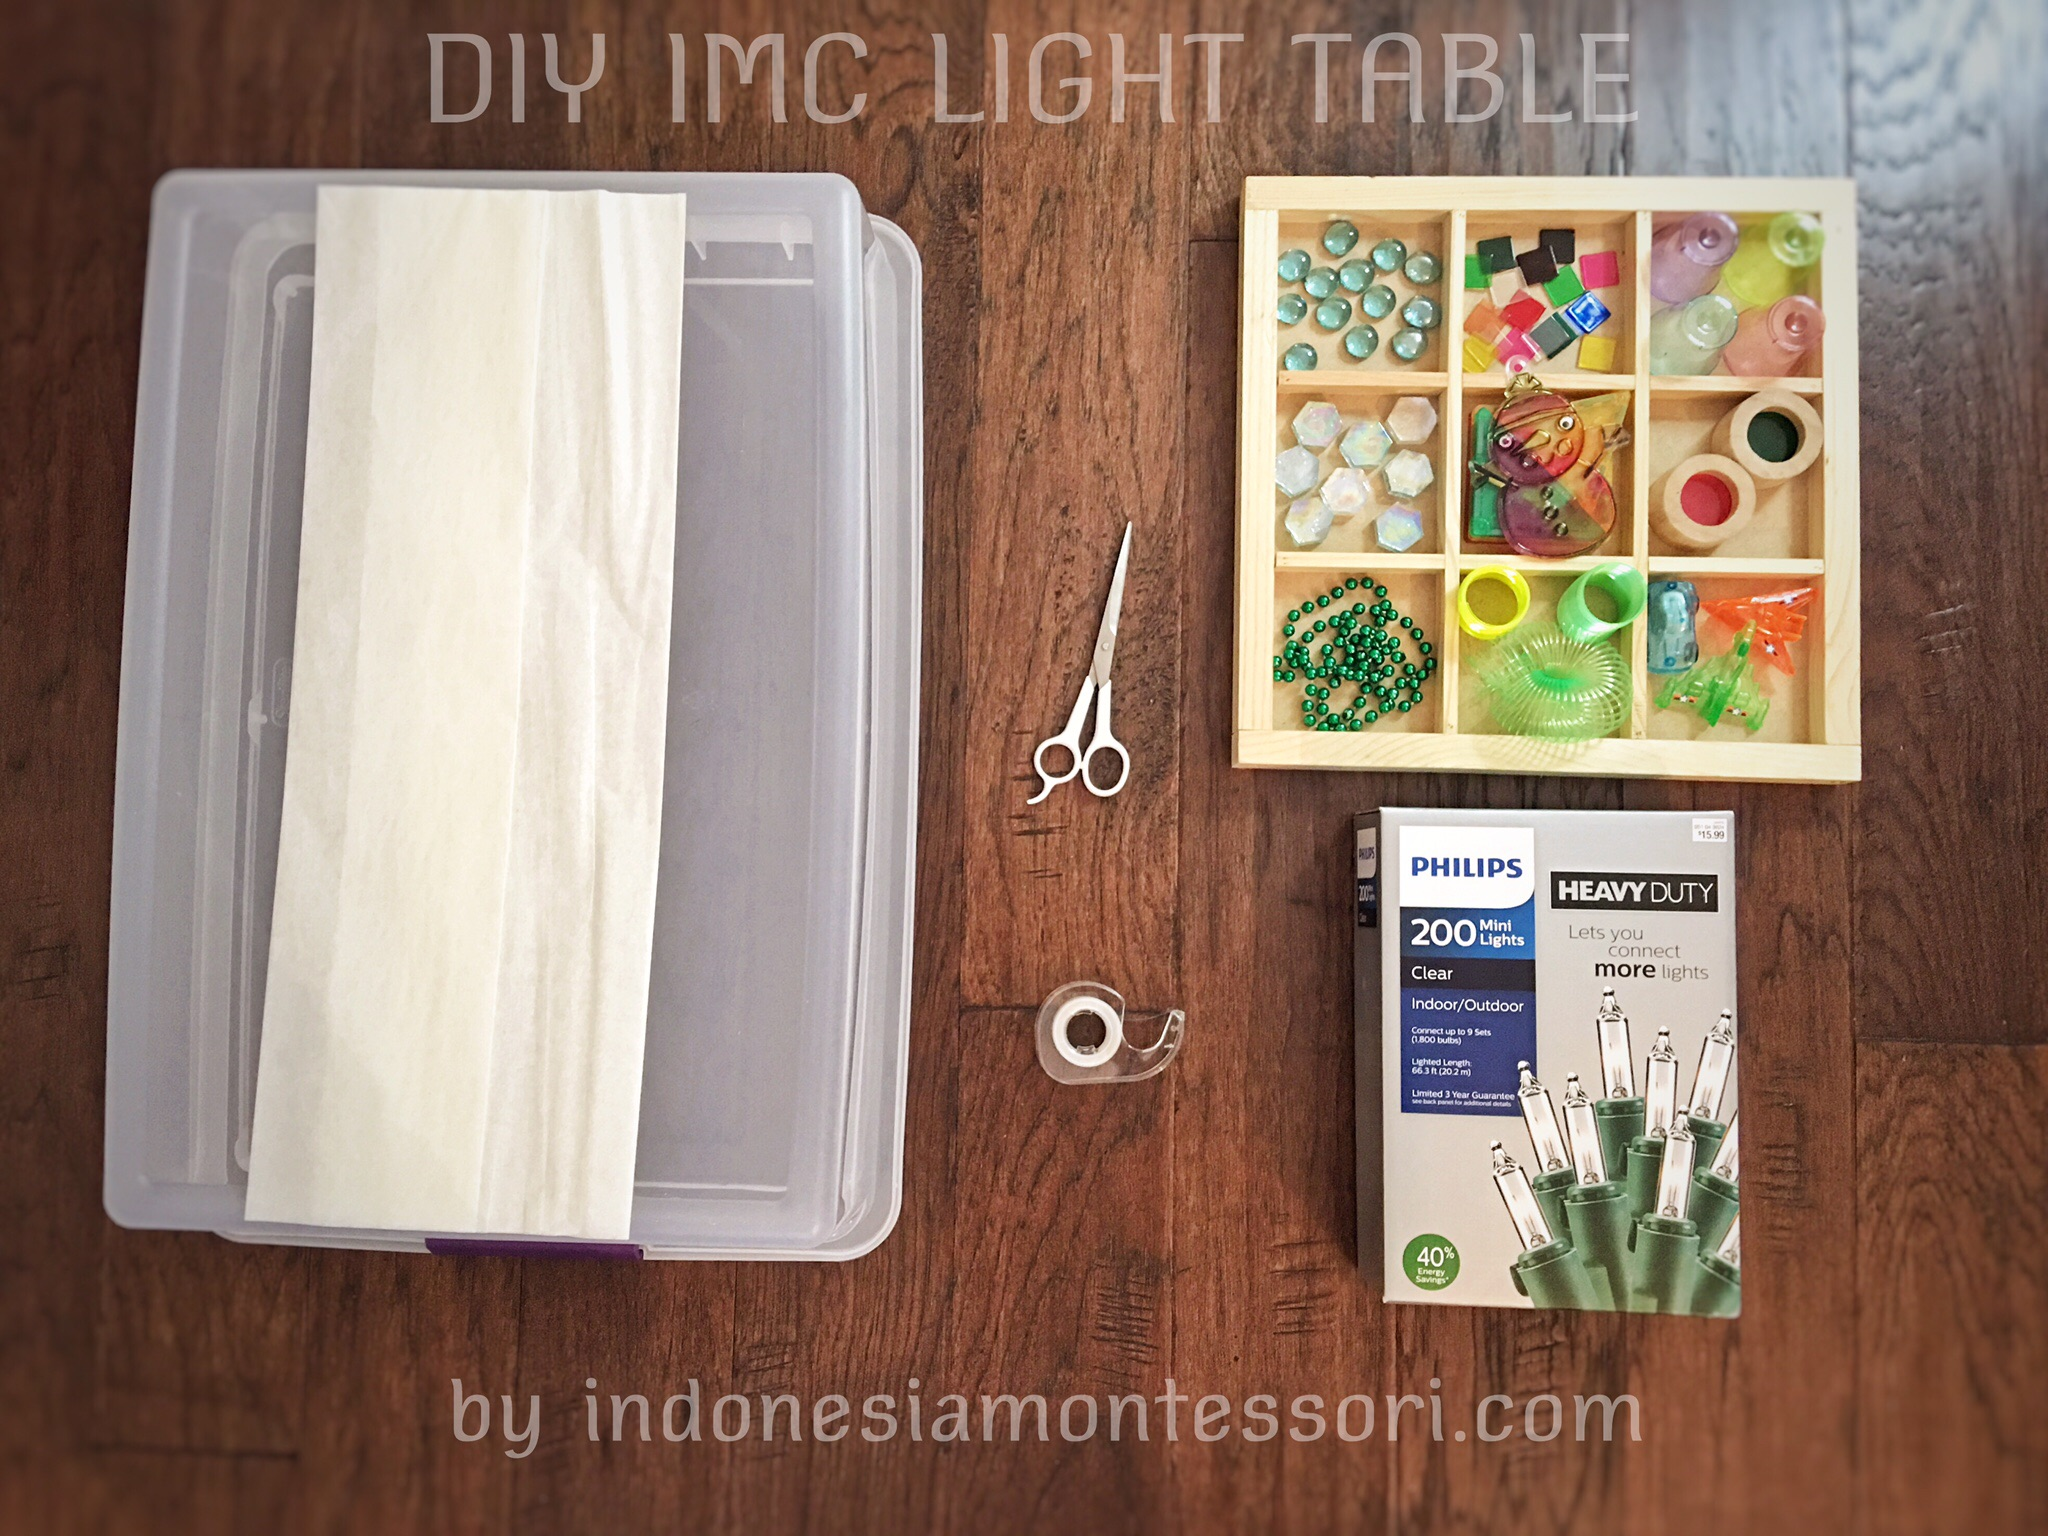 IMC DIY LIGHT TABLE